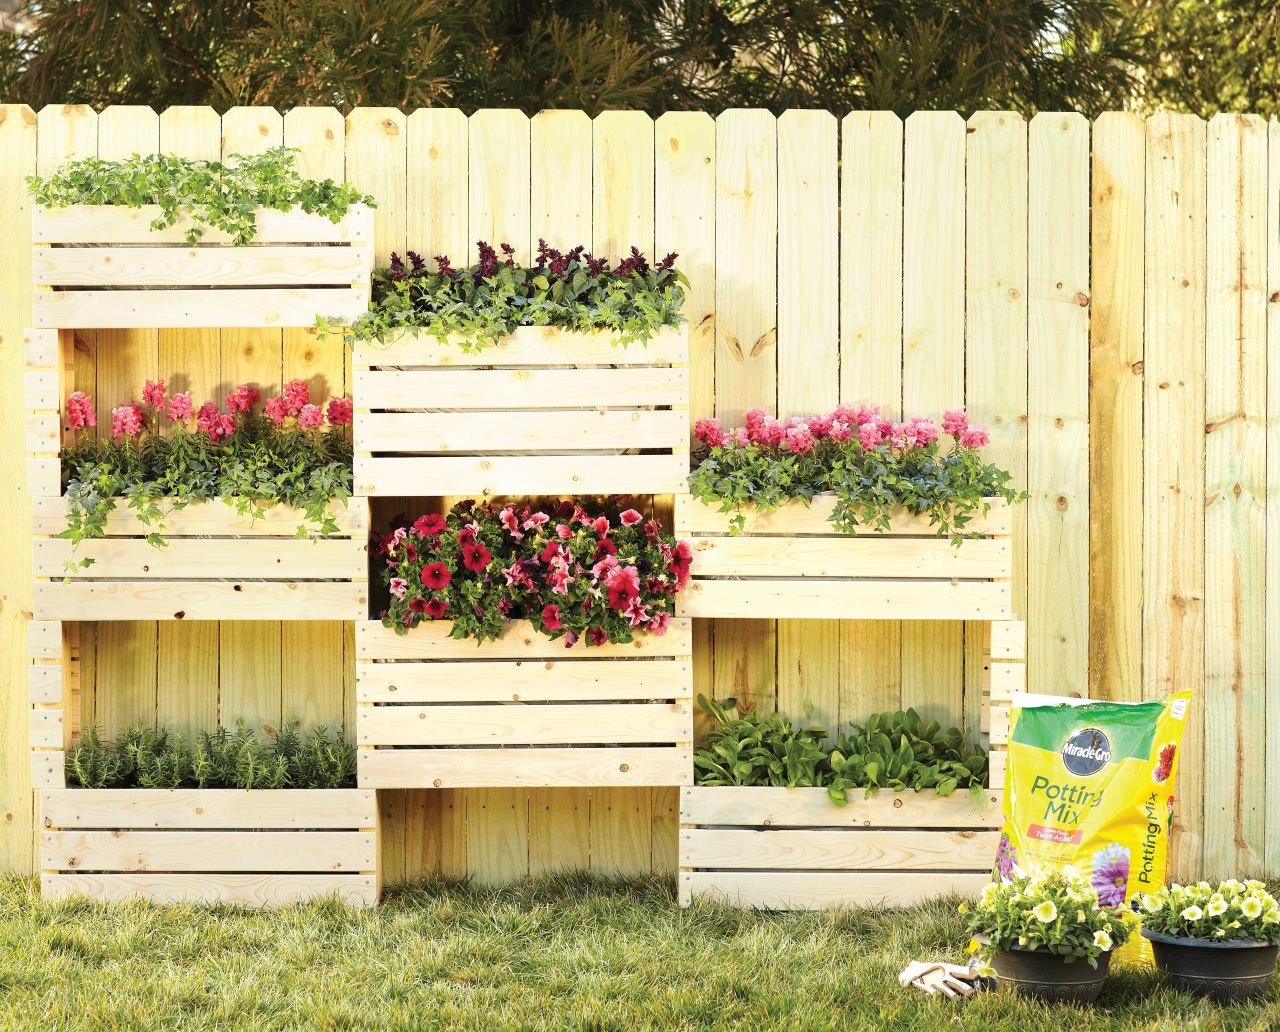 27-a-creative-use-for-ordinary-wooden-crates-vertical-garden-idea-homebnc